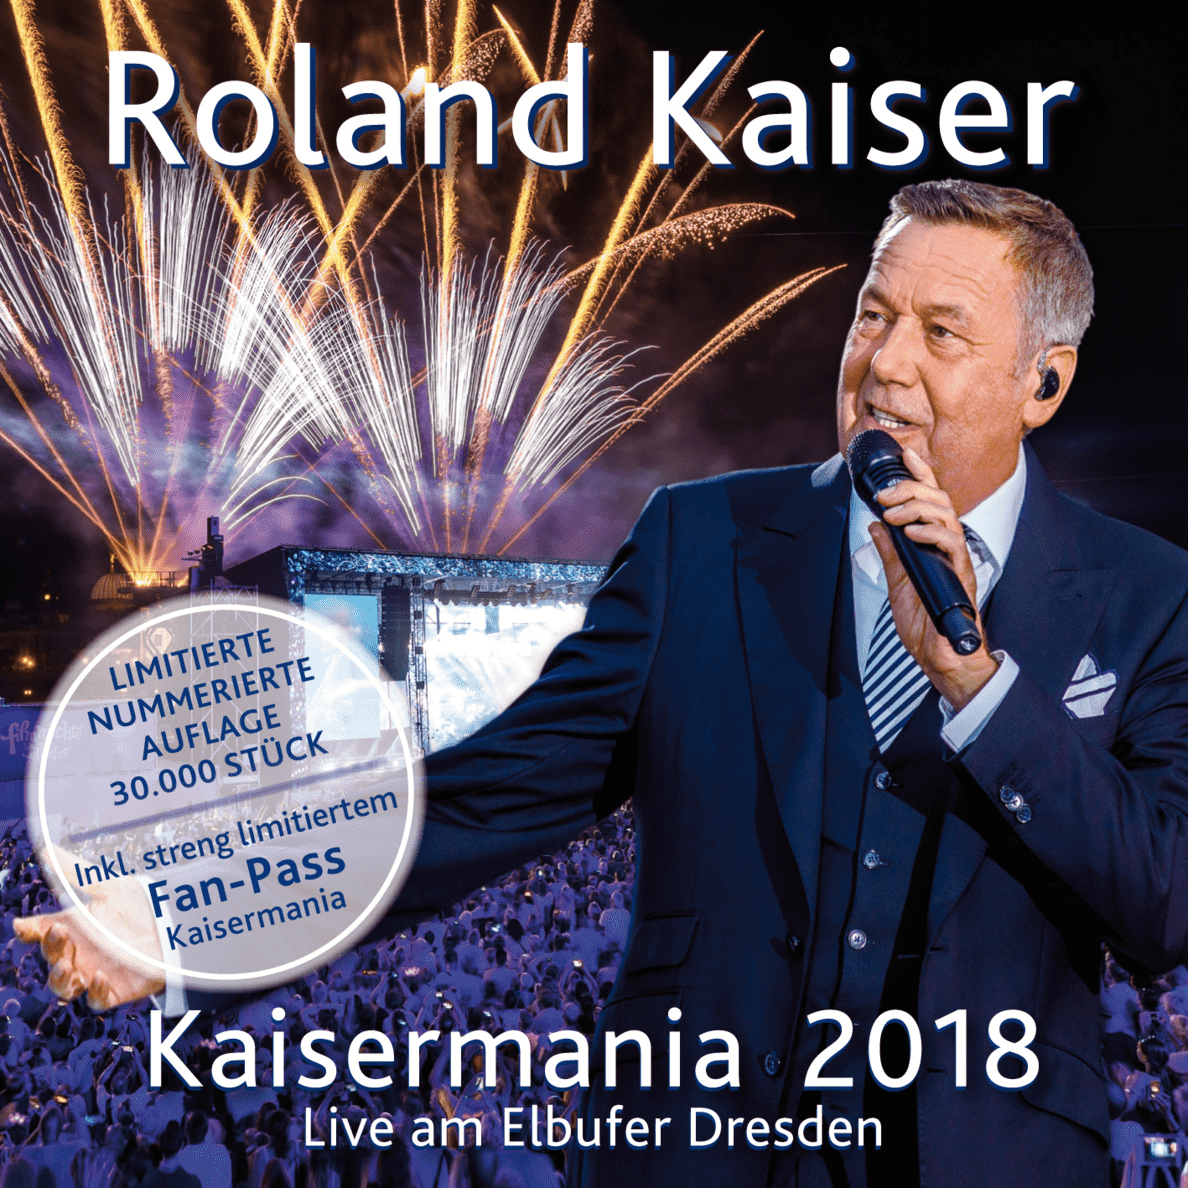 Roland Kaiser - Kaisermania 2018 (Live am Elbufer Dresden)- Das Konzert in voller Länge (Limited Edition) - (CD)